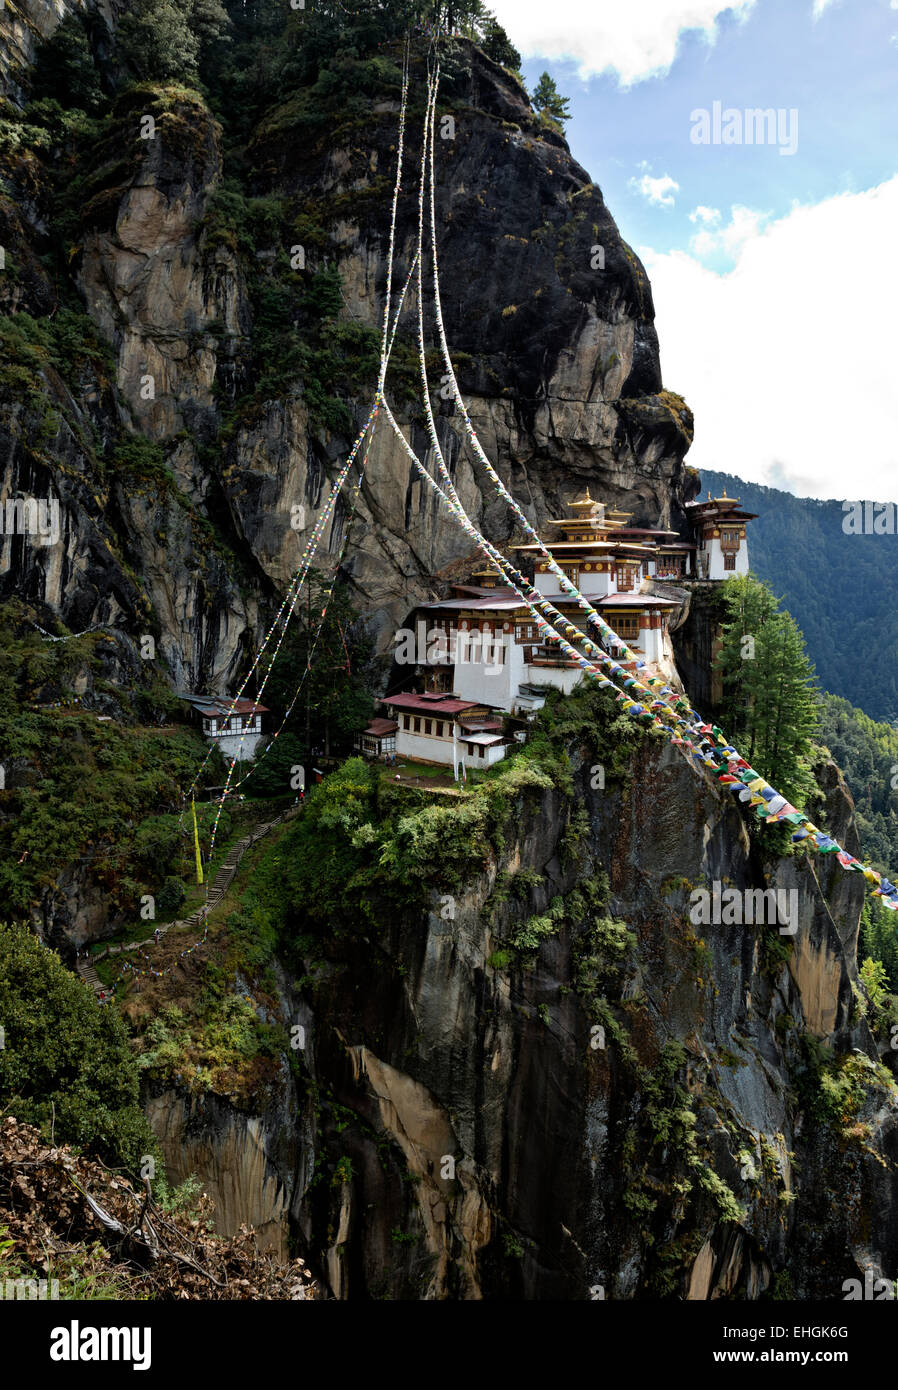 BHUTAN - Prayer flags at Taktshang Goemba, ( Tiger's Nest Monastery), perched on side of cliff high above the - Stock Image